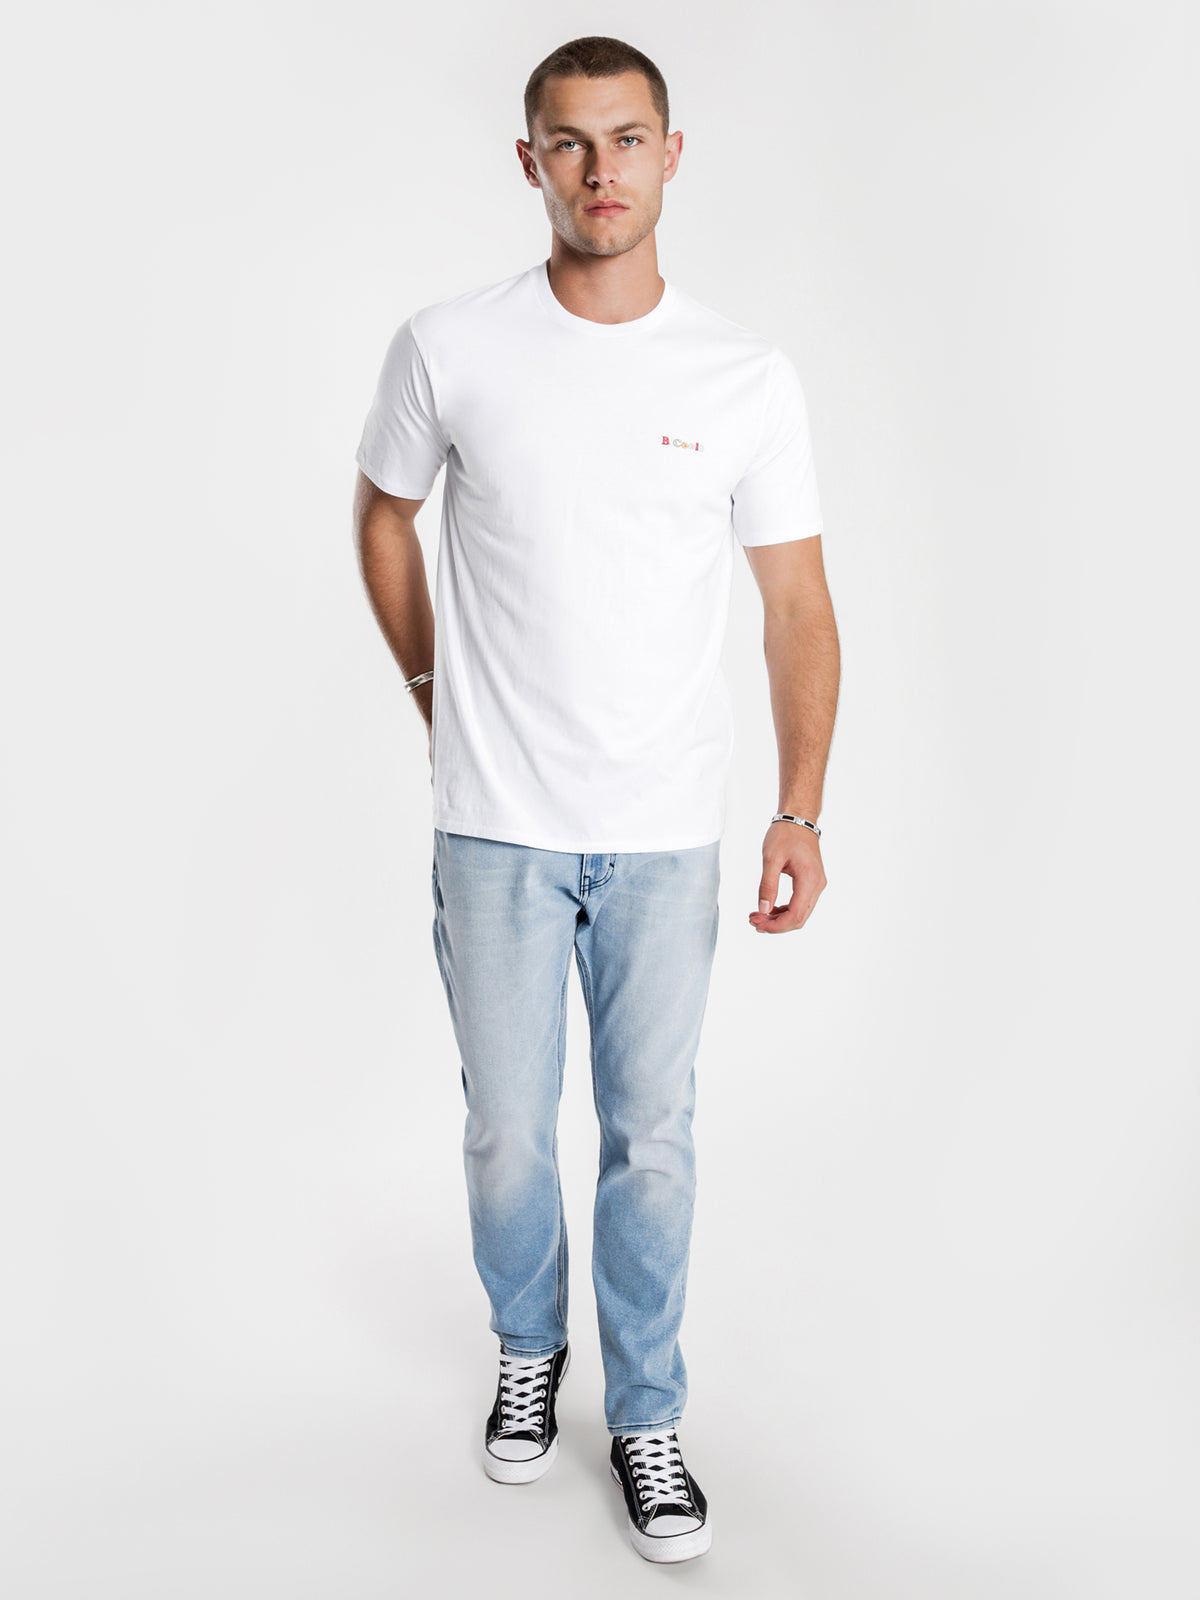 B.Cools Retro Embro T-Shirt in White